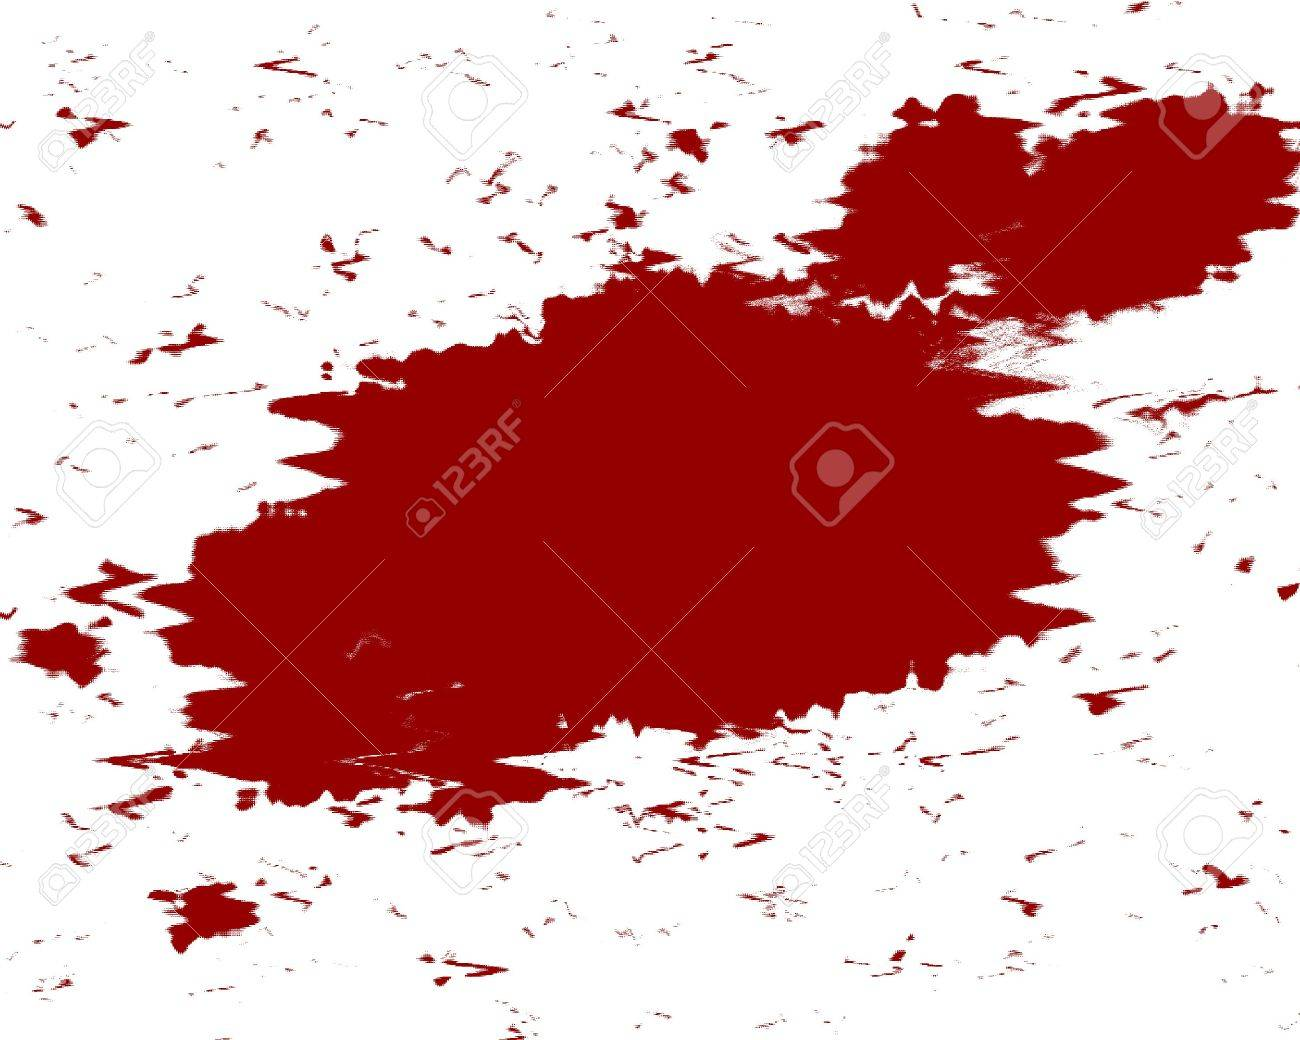 red blood splatter on a white background Stock Photo - 3718862